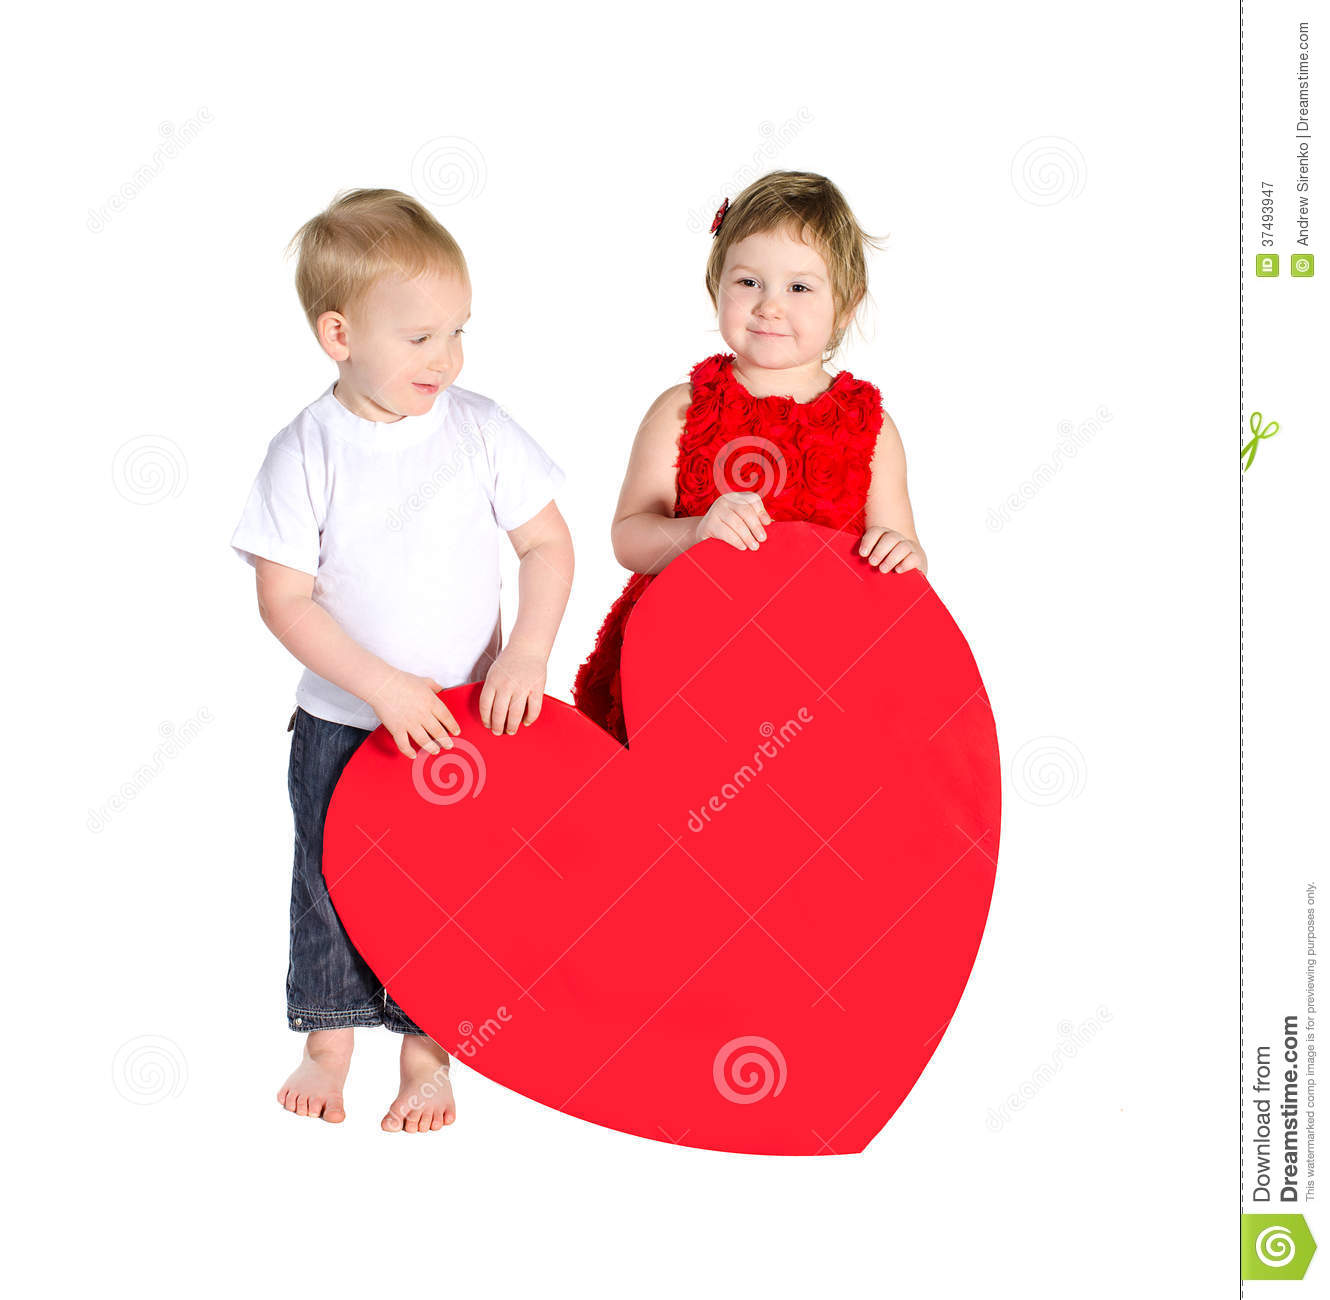 Children with huge heart made of red paper